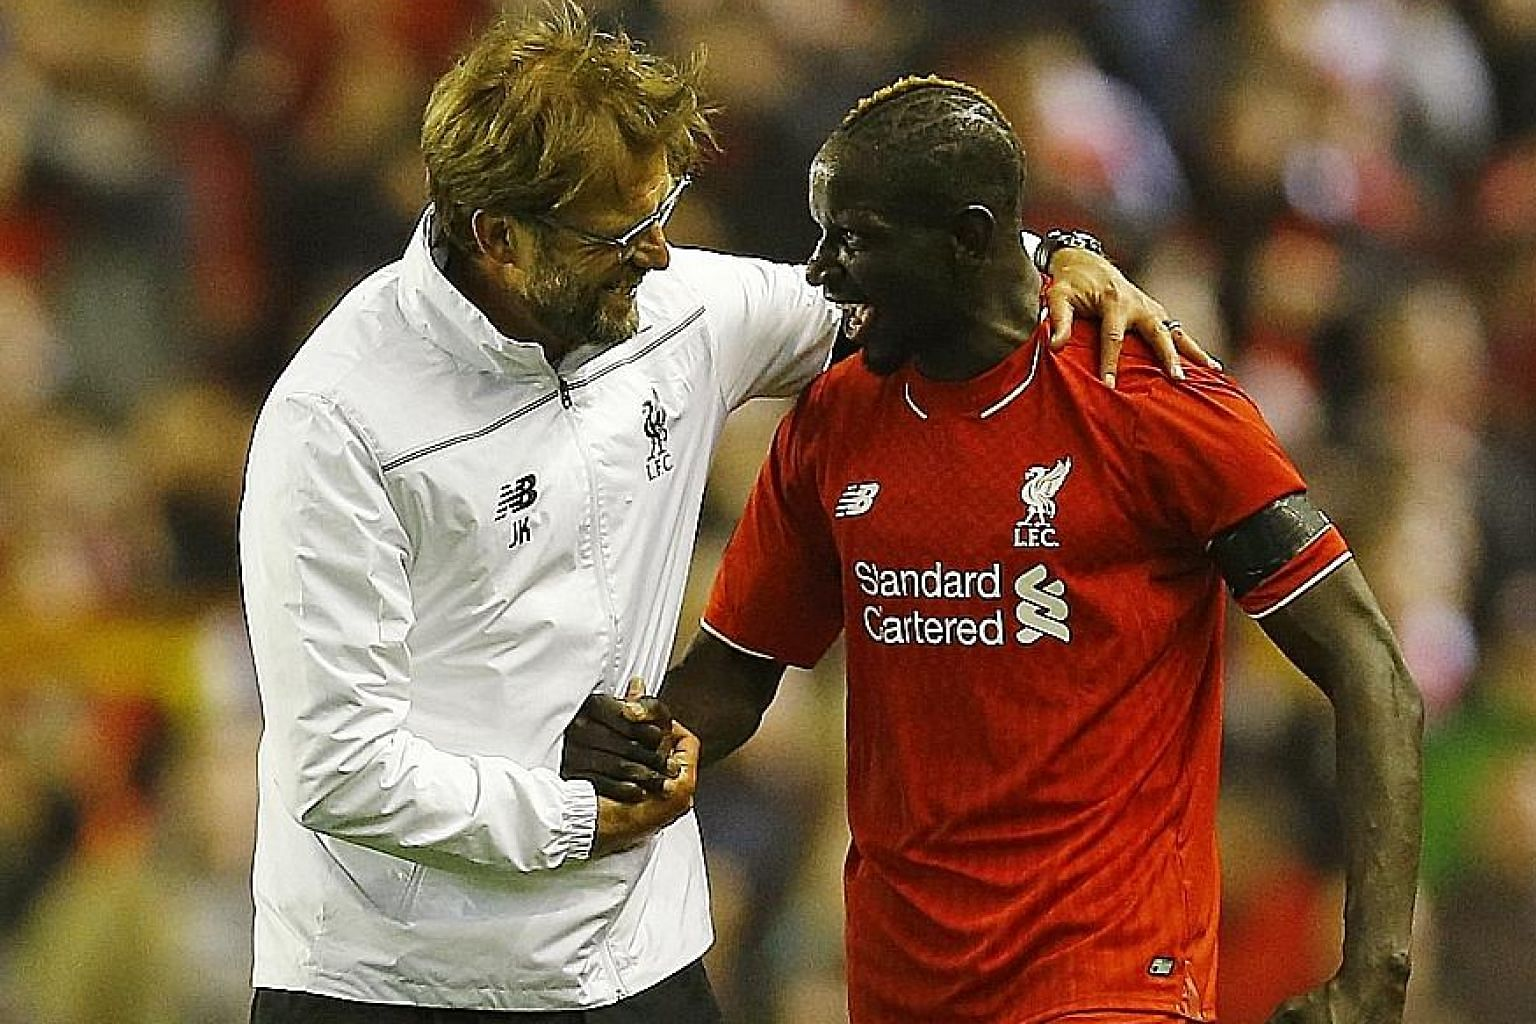 Liverpool manager Jurgen Klopp with Mamadou Sakho in May this year. The France international has not played since April, when Uefa told him that he had failed a dope test, although the case against him was dismissed this month.